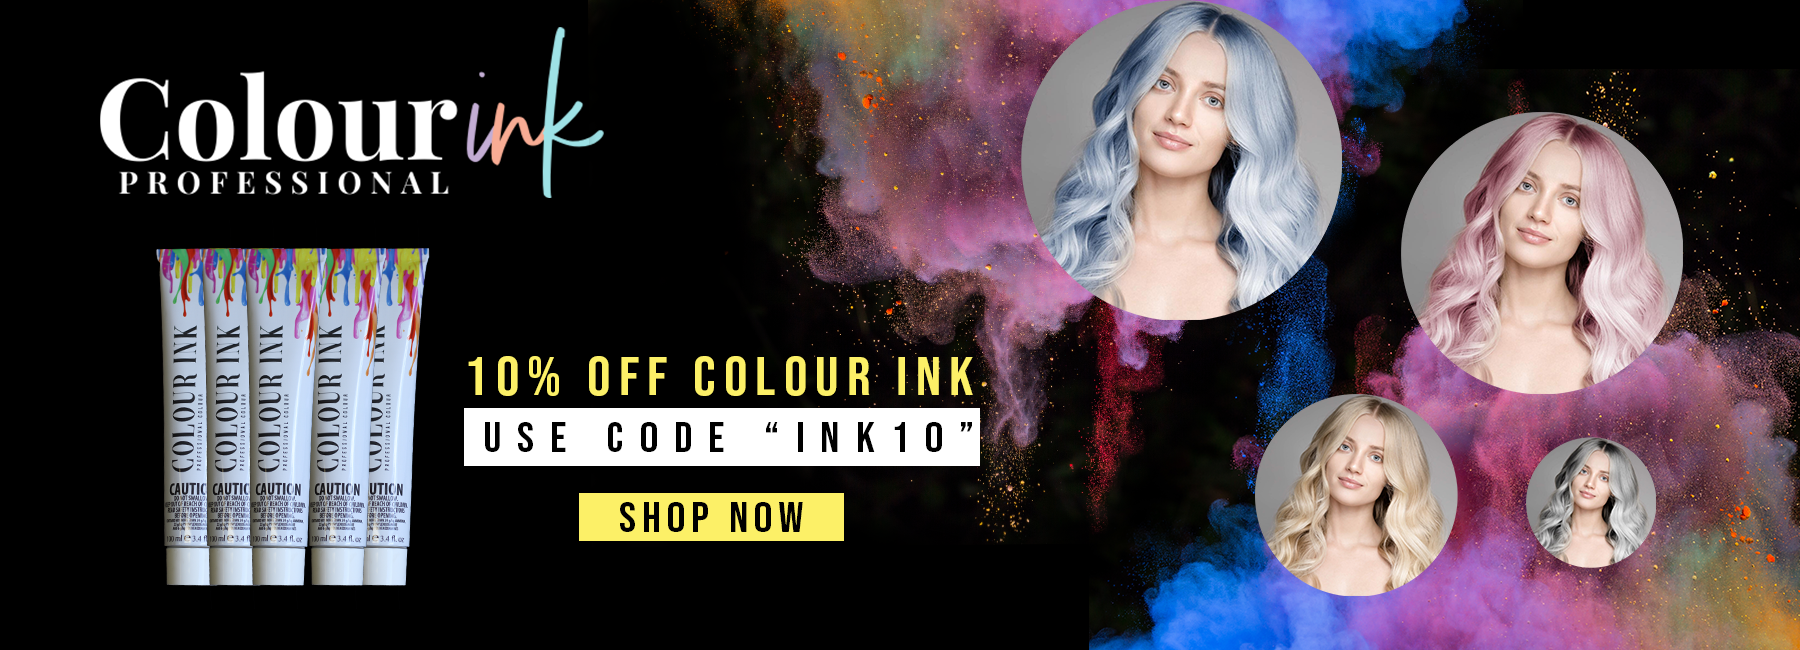 Colour Ink Professional Hair Colour Shop Online